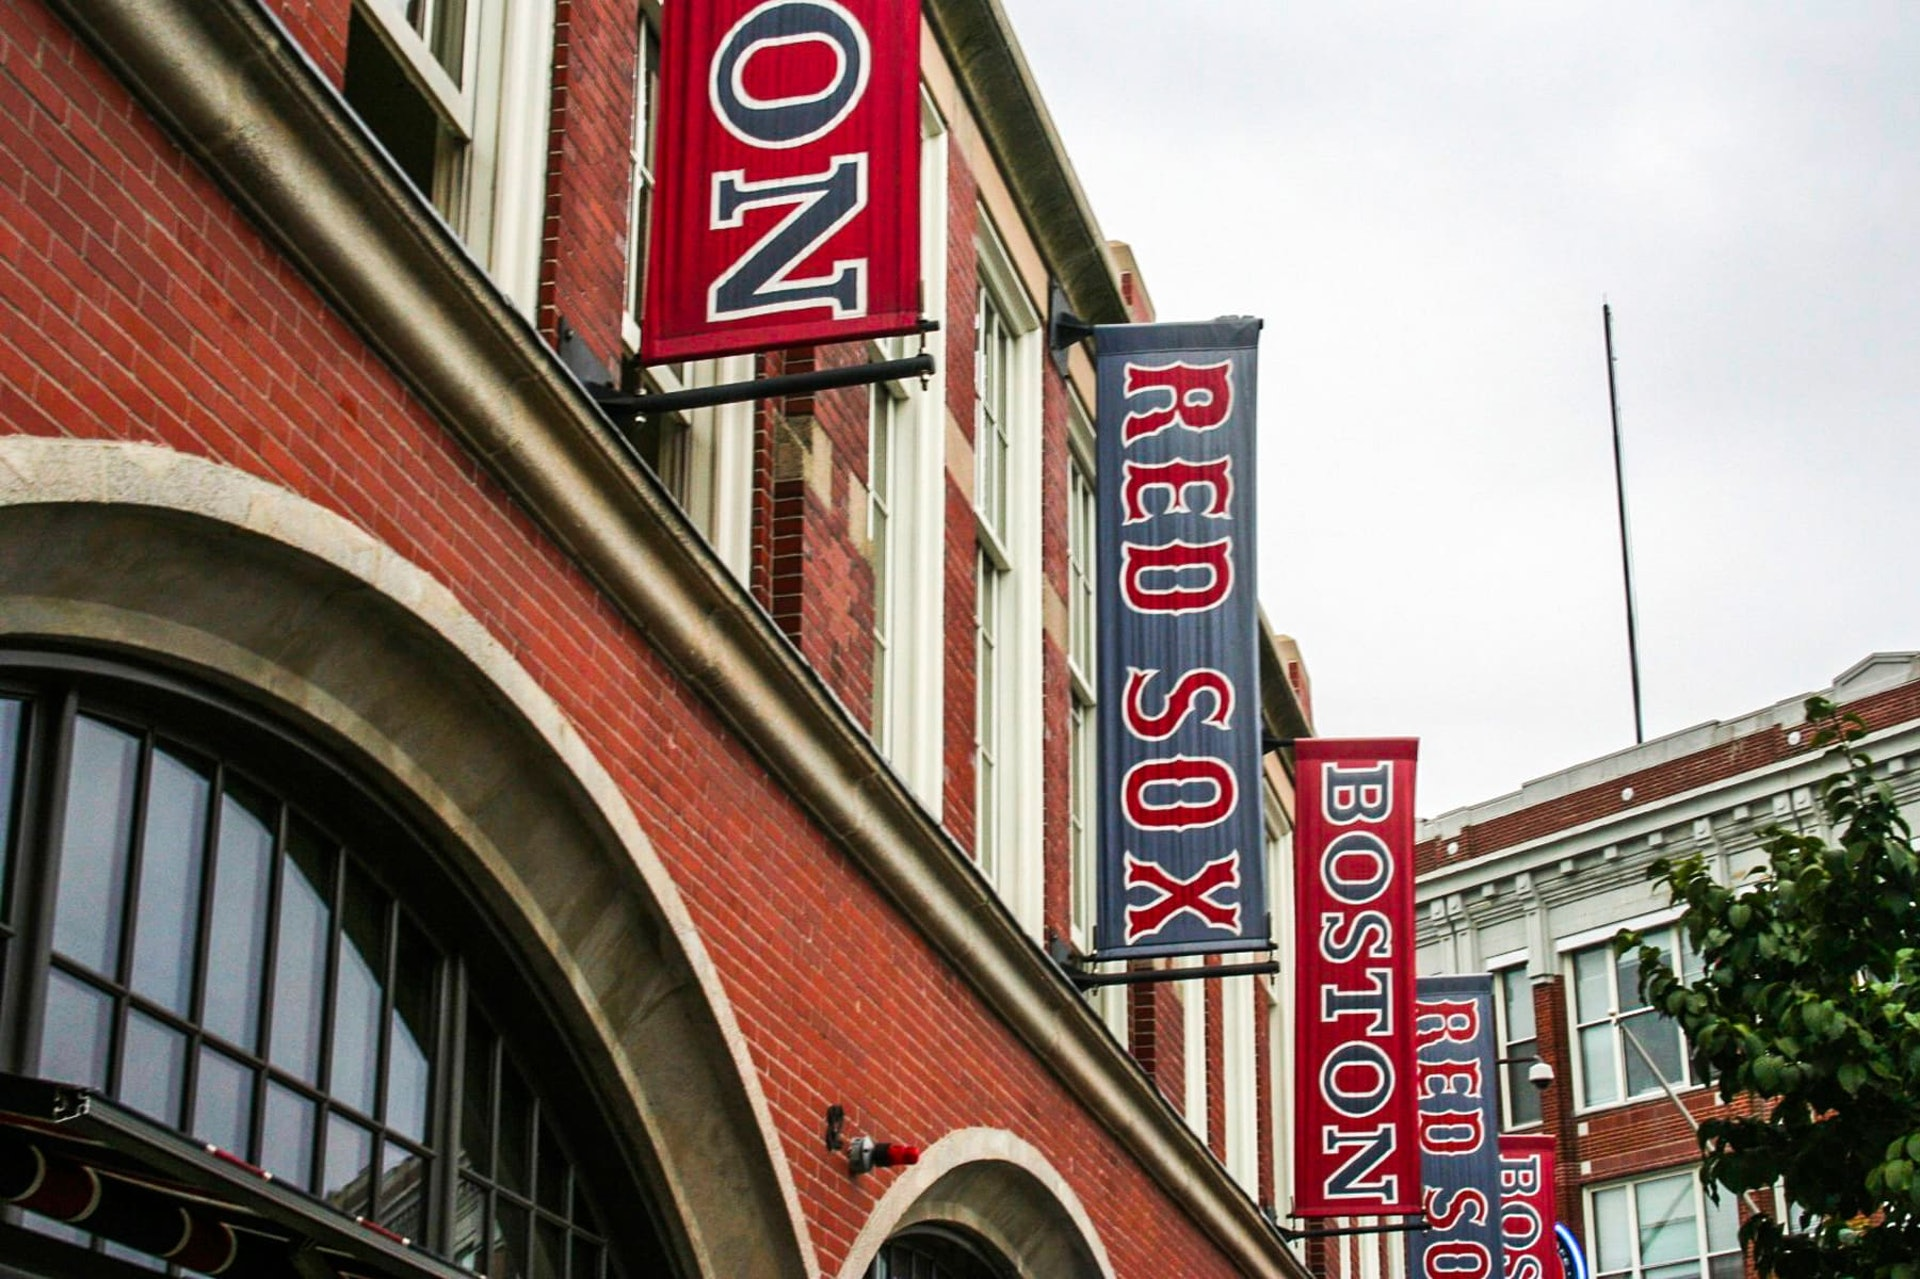 Exterior of Fenway Park, home of the Red Sox baseball team in Boston